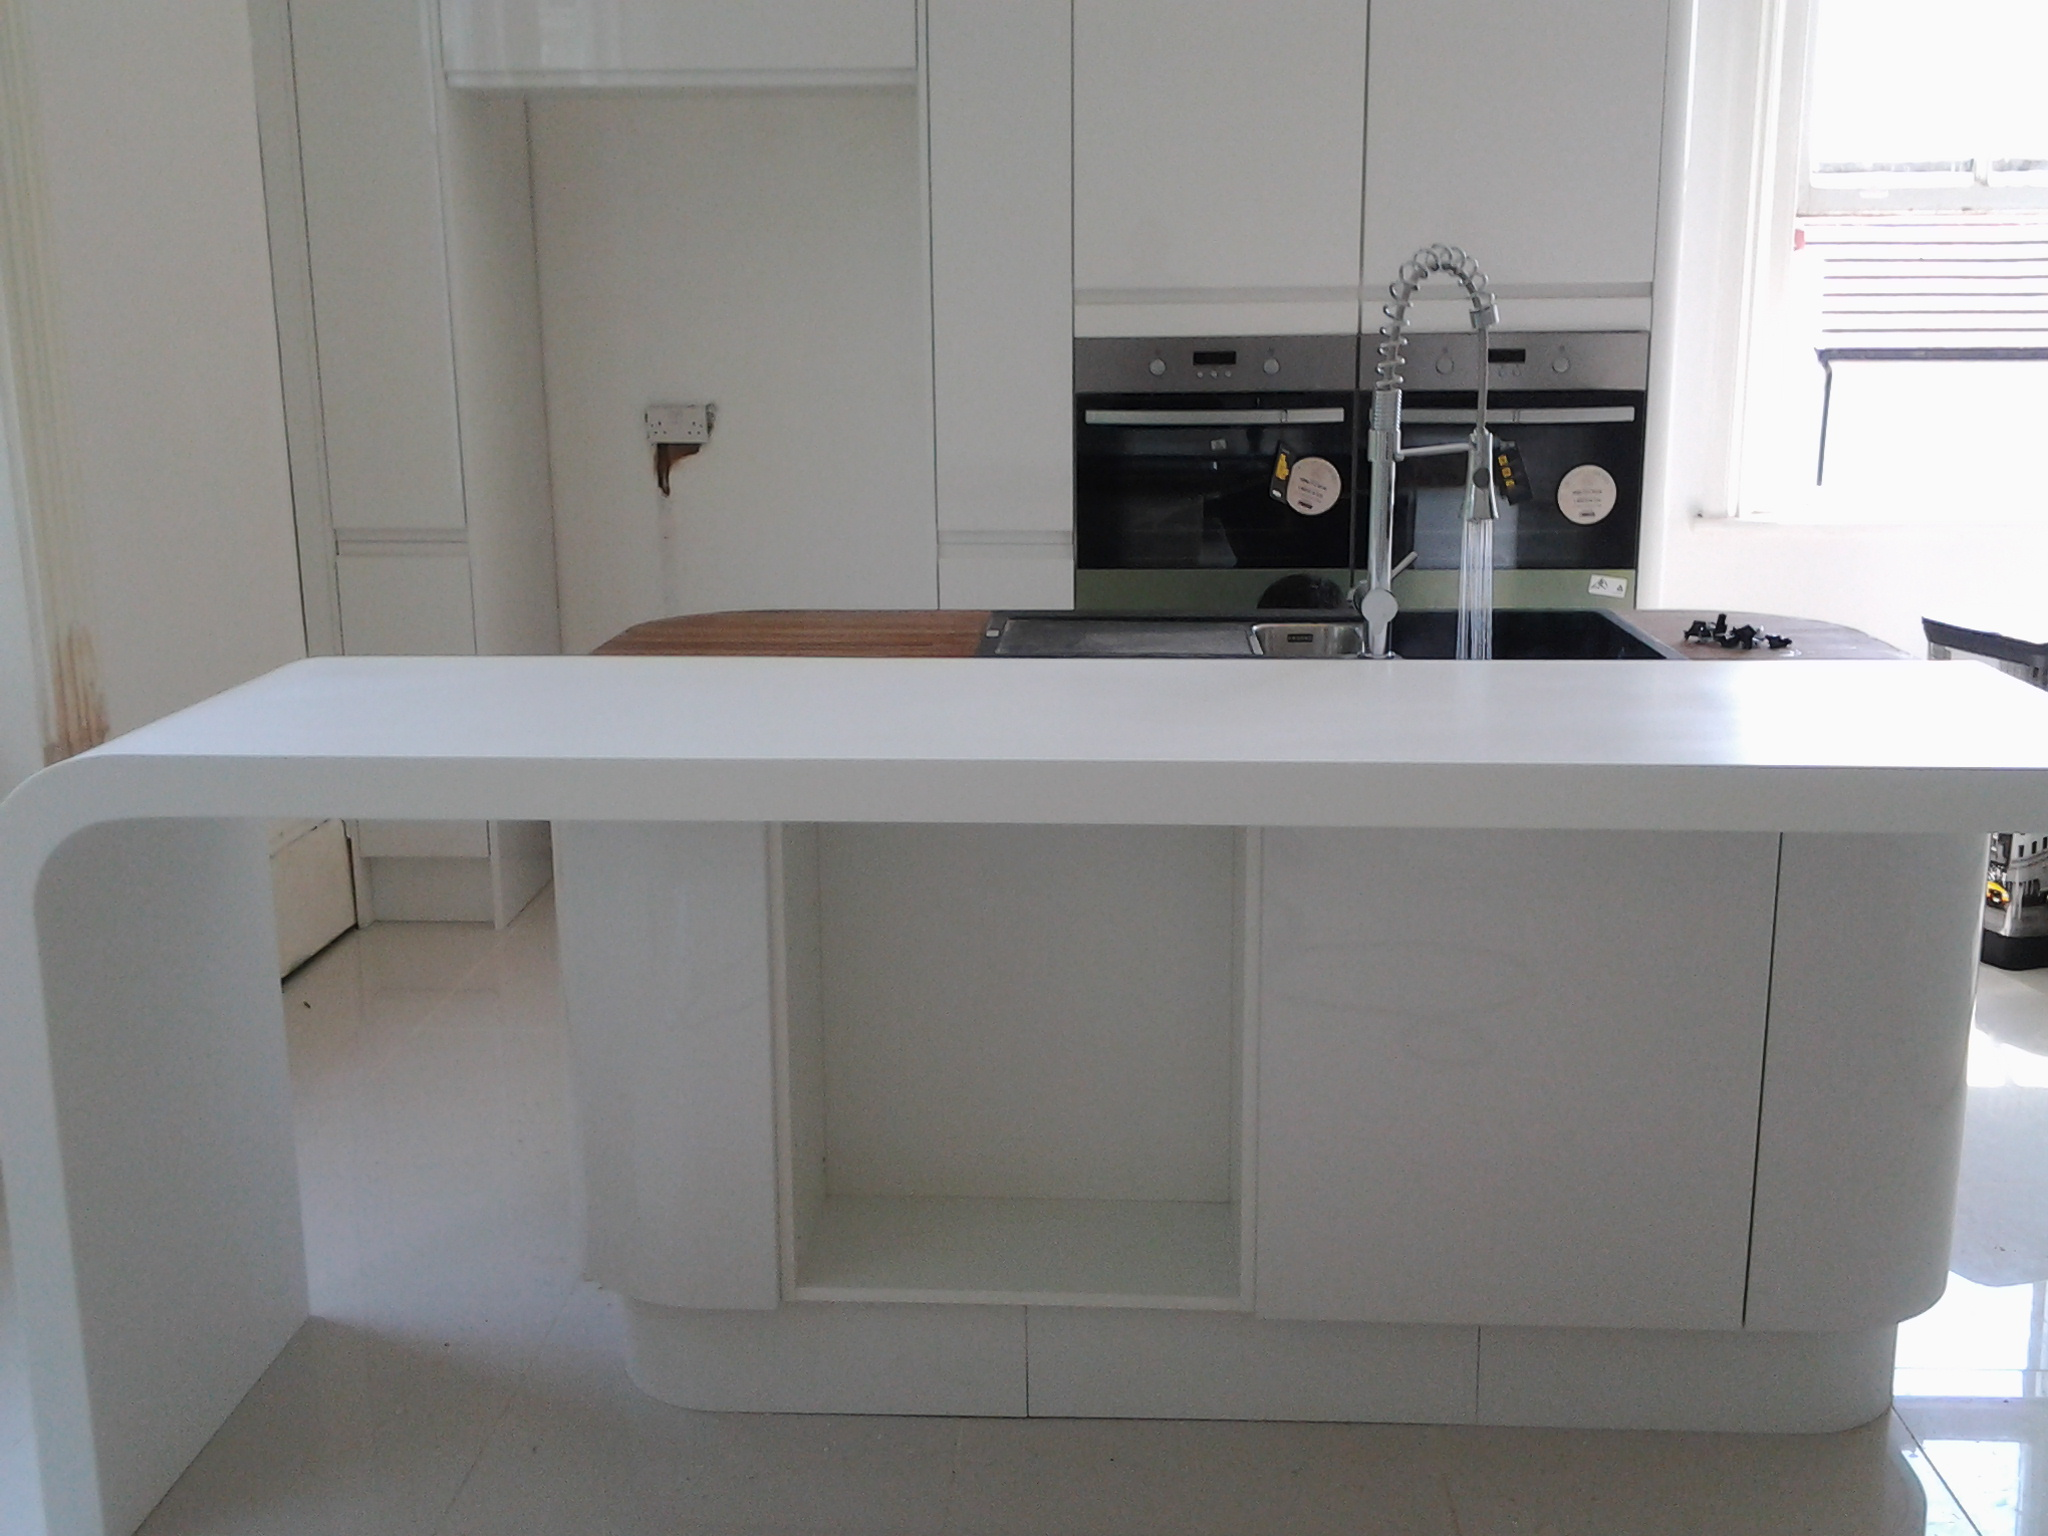 Glacier white corian worktop with formed curved end panels